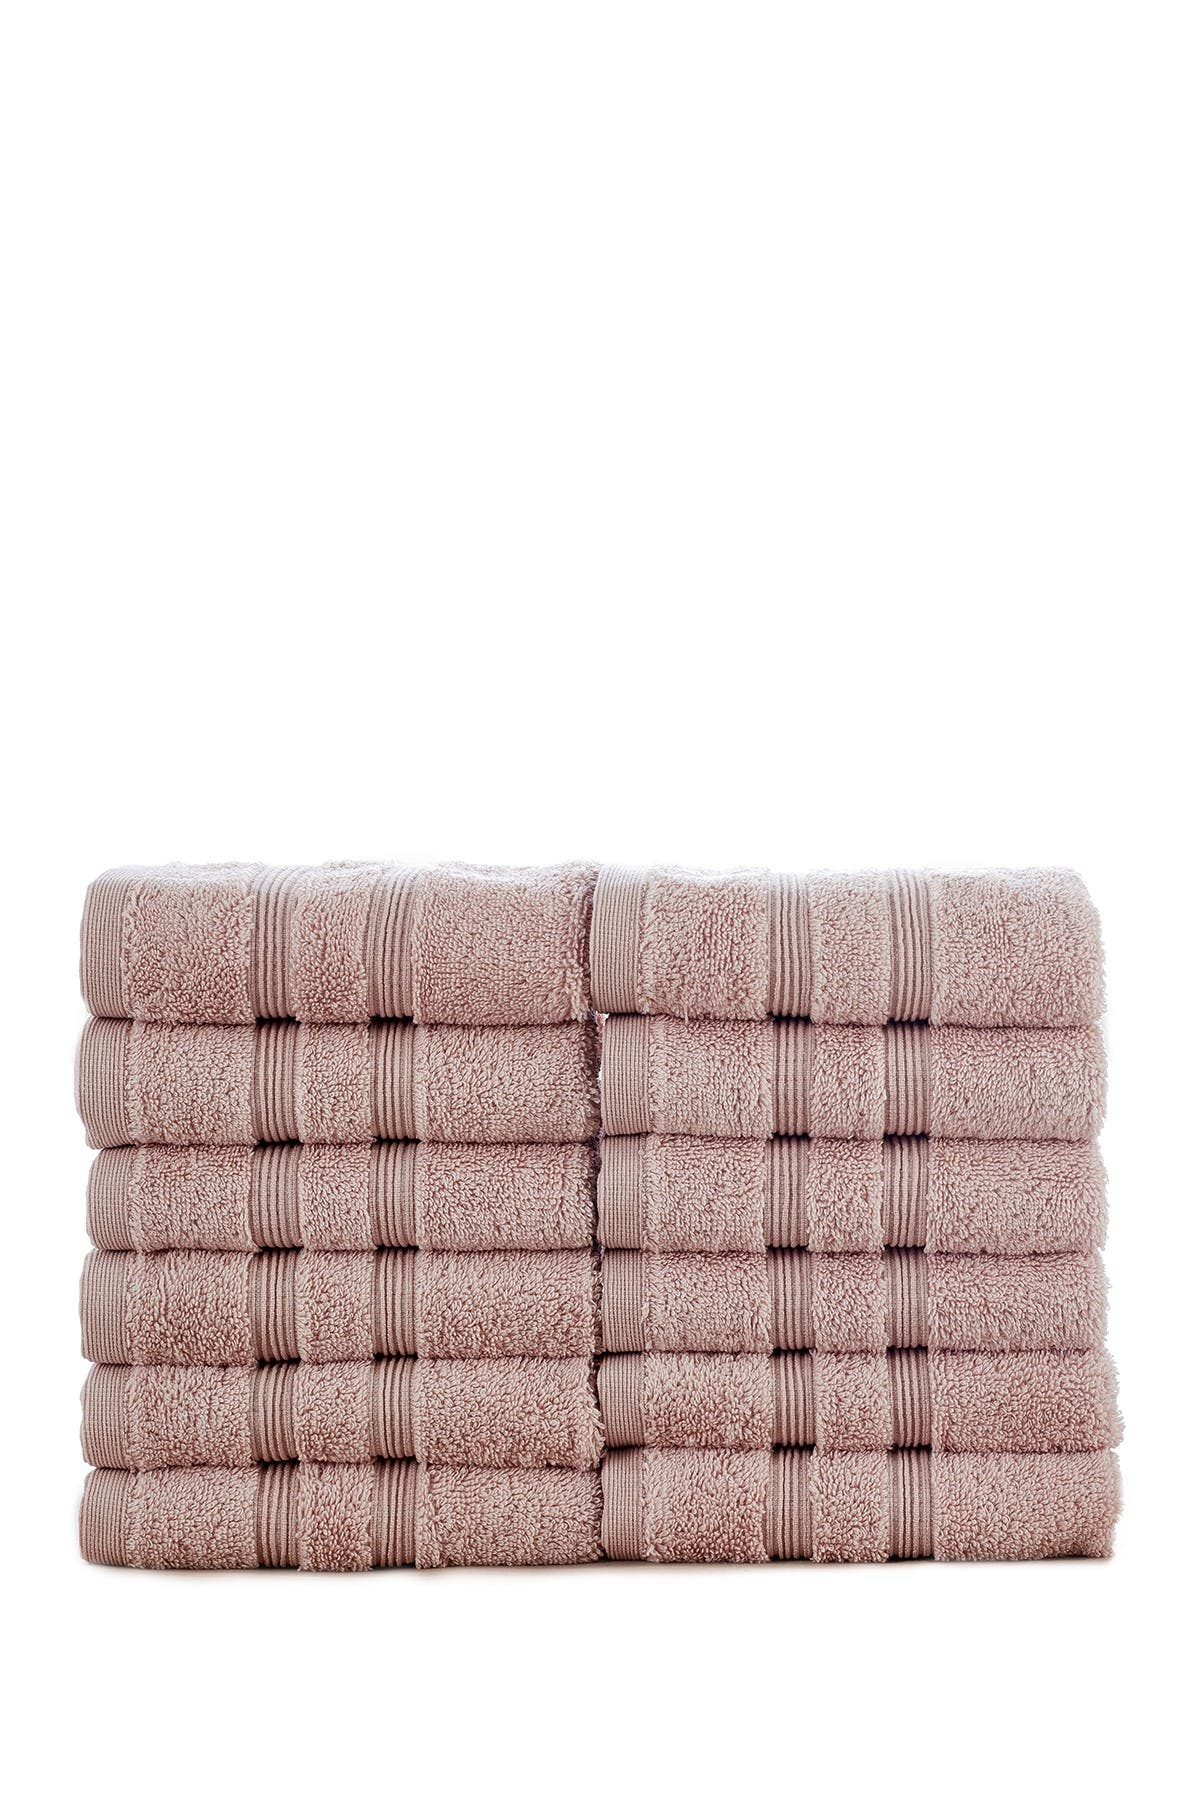 Image of Modern Threads Manor Ridge Turkish Cotton 700 GSM Wash Cloth - Set of 12 - Blush